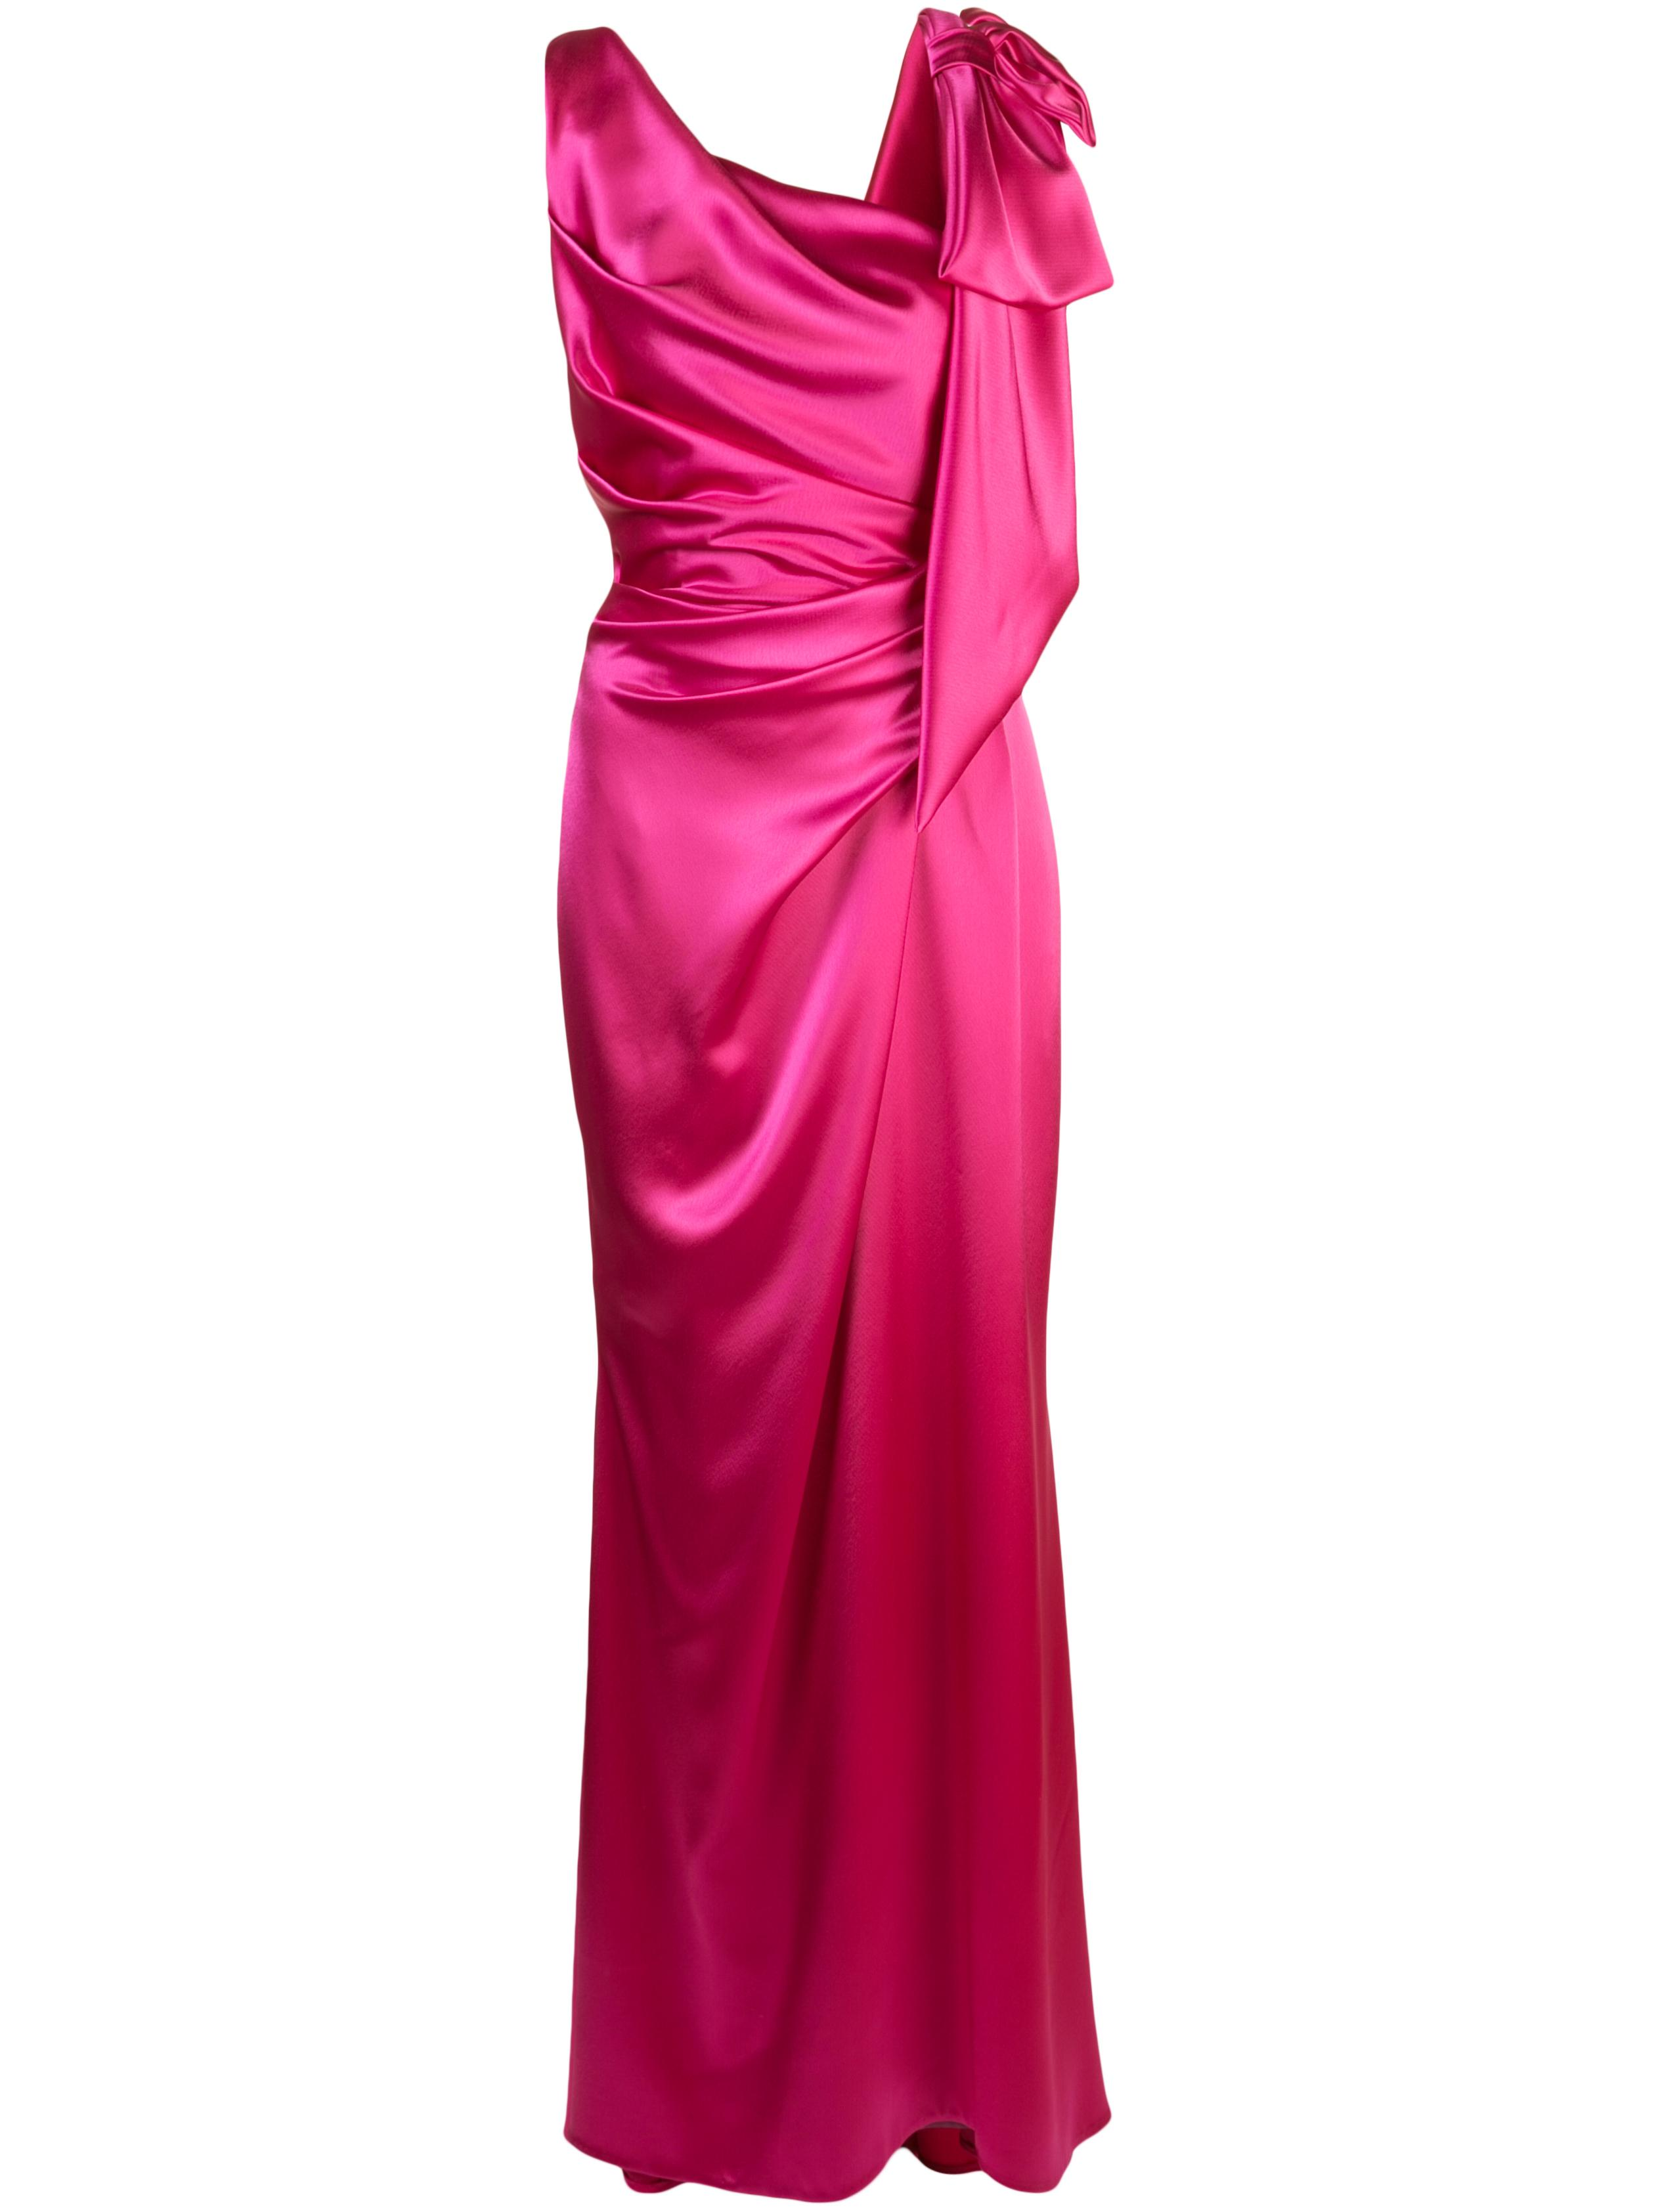 S/Less Shiny/Matte Crepe Gown w/Bow